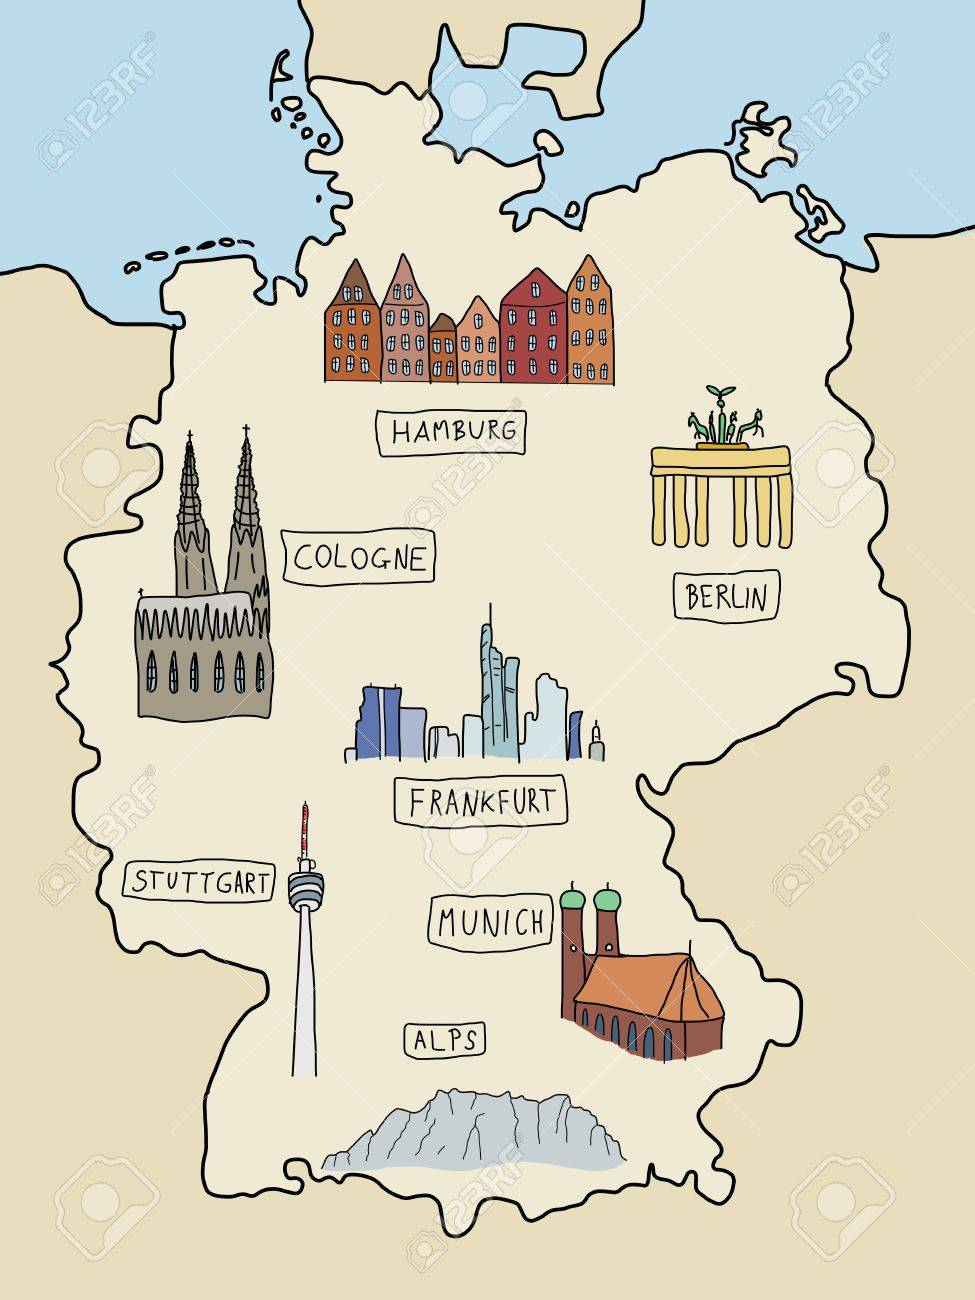 Germany Famous Places On A Doodle Map Berlin Hamburg Cologne - Berlin map in germany